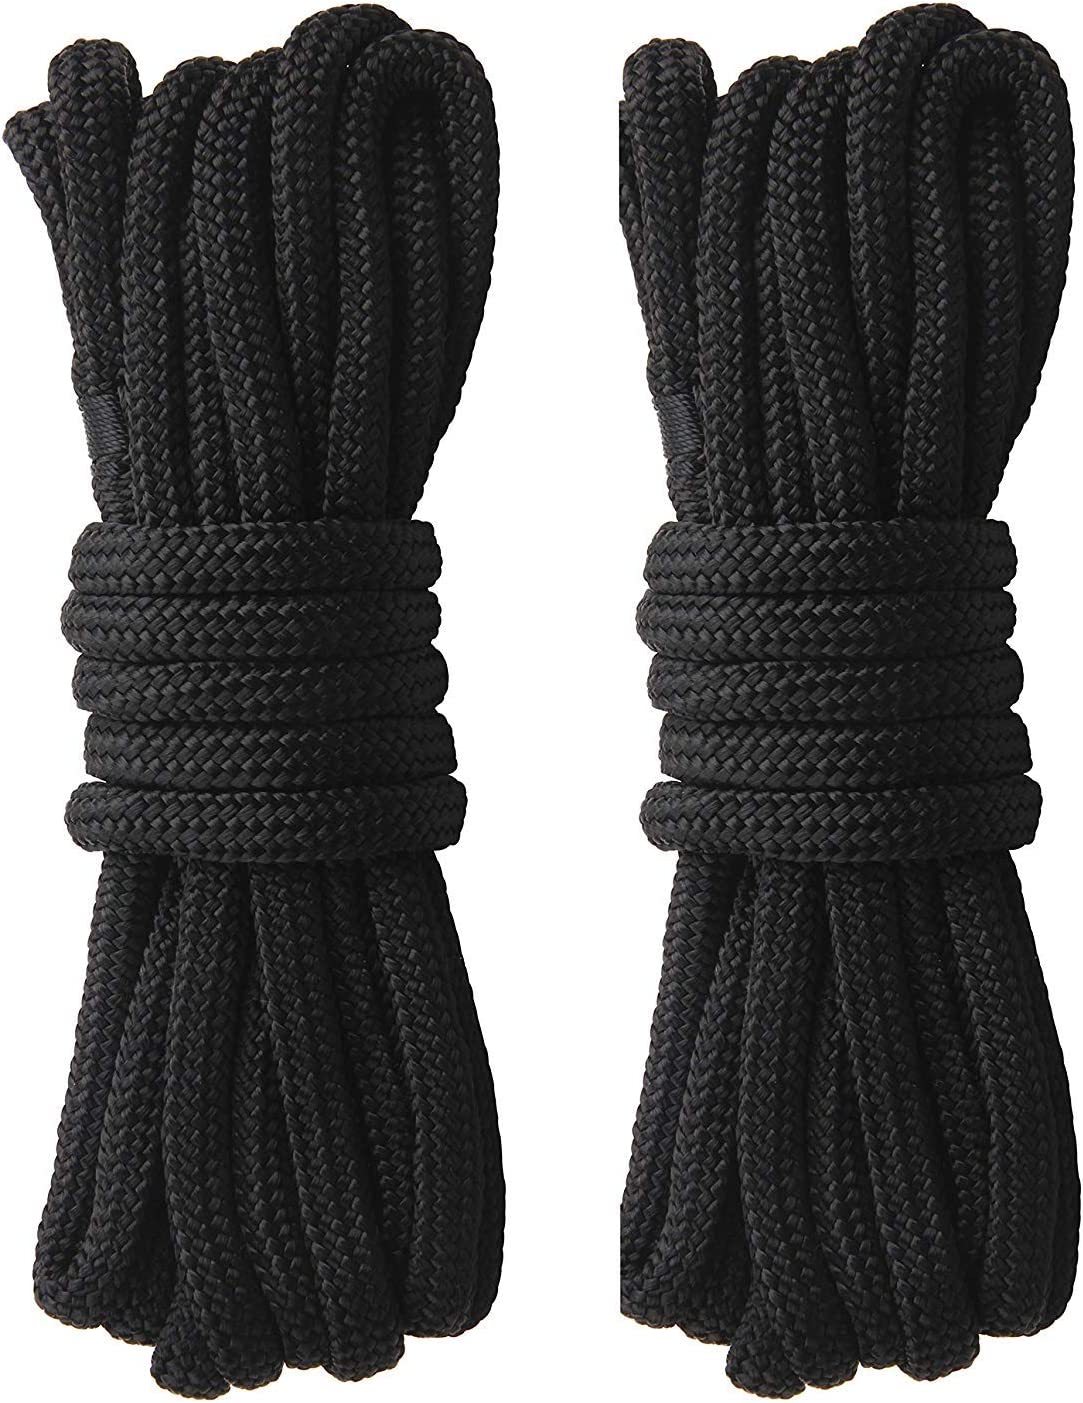 Shaddock Fishing Docking Lines Double-Braided Nylon Anchor Rope 1//2 Inch Boat Mooring Rope with 12 Inch Eyelet for Boats 25 FT,50 FT